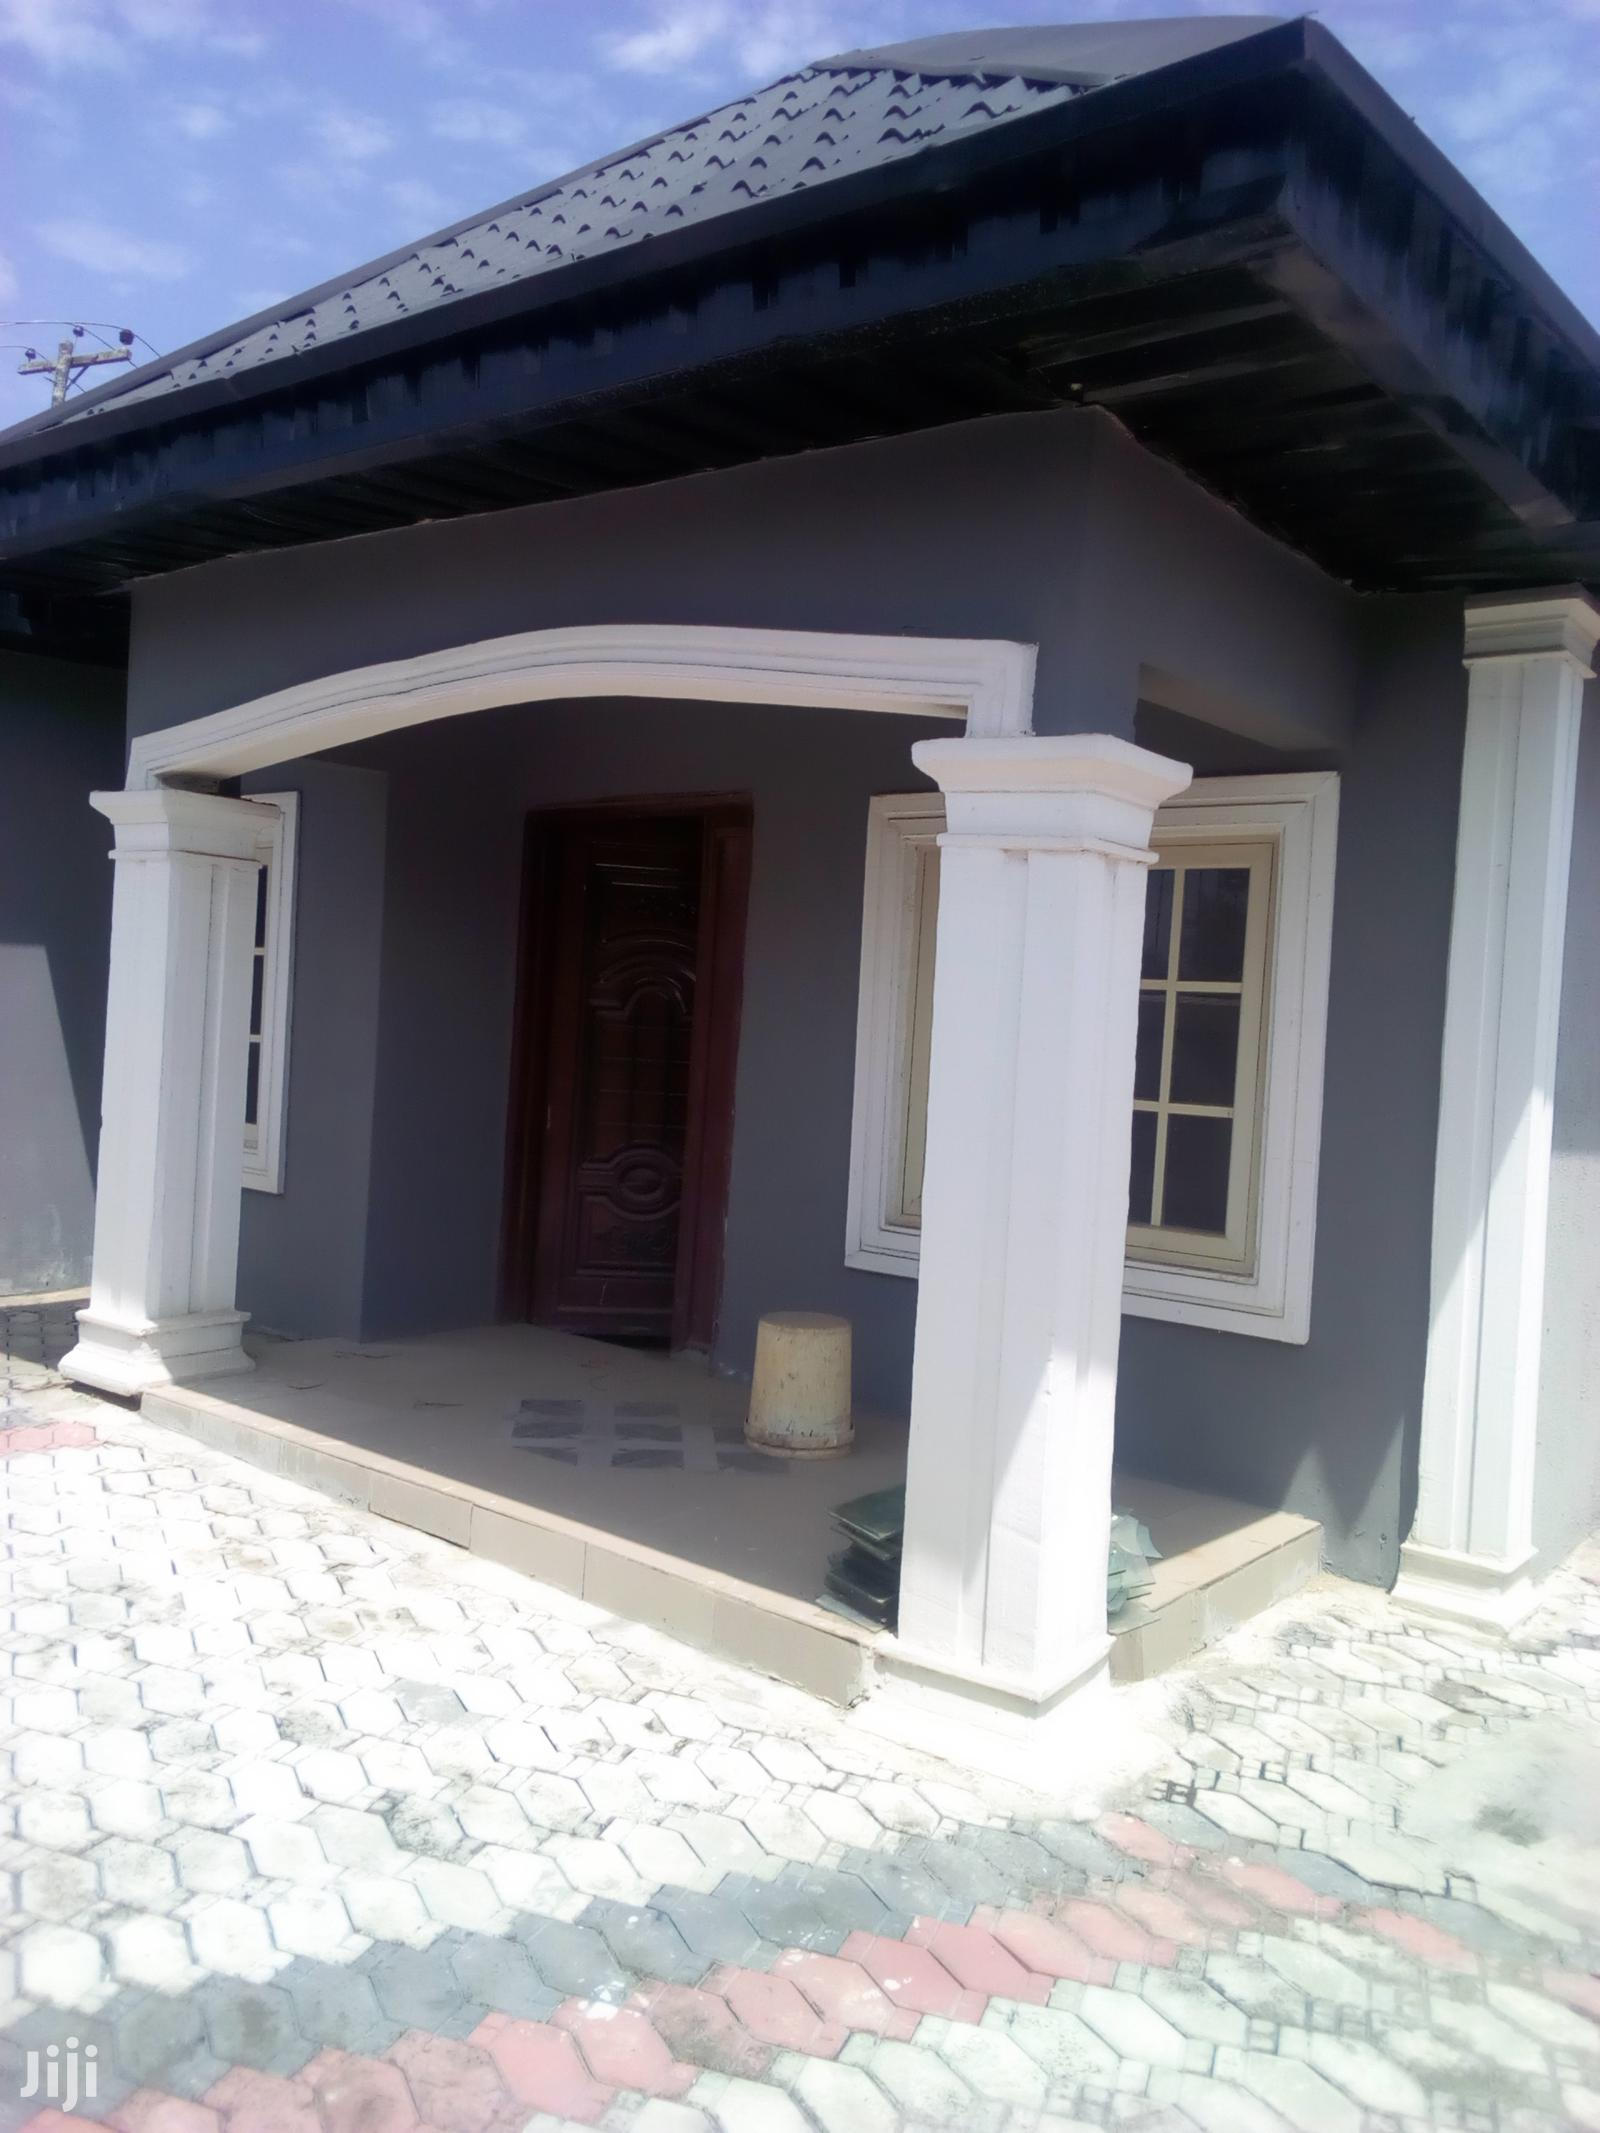 New & Spacious 3 Bedroom Bungalow At Satellite Town For Sale.